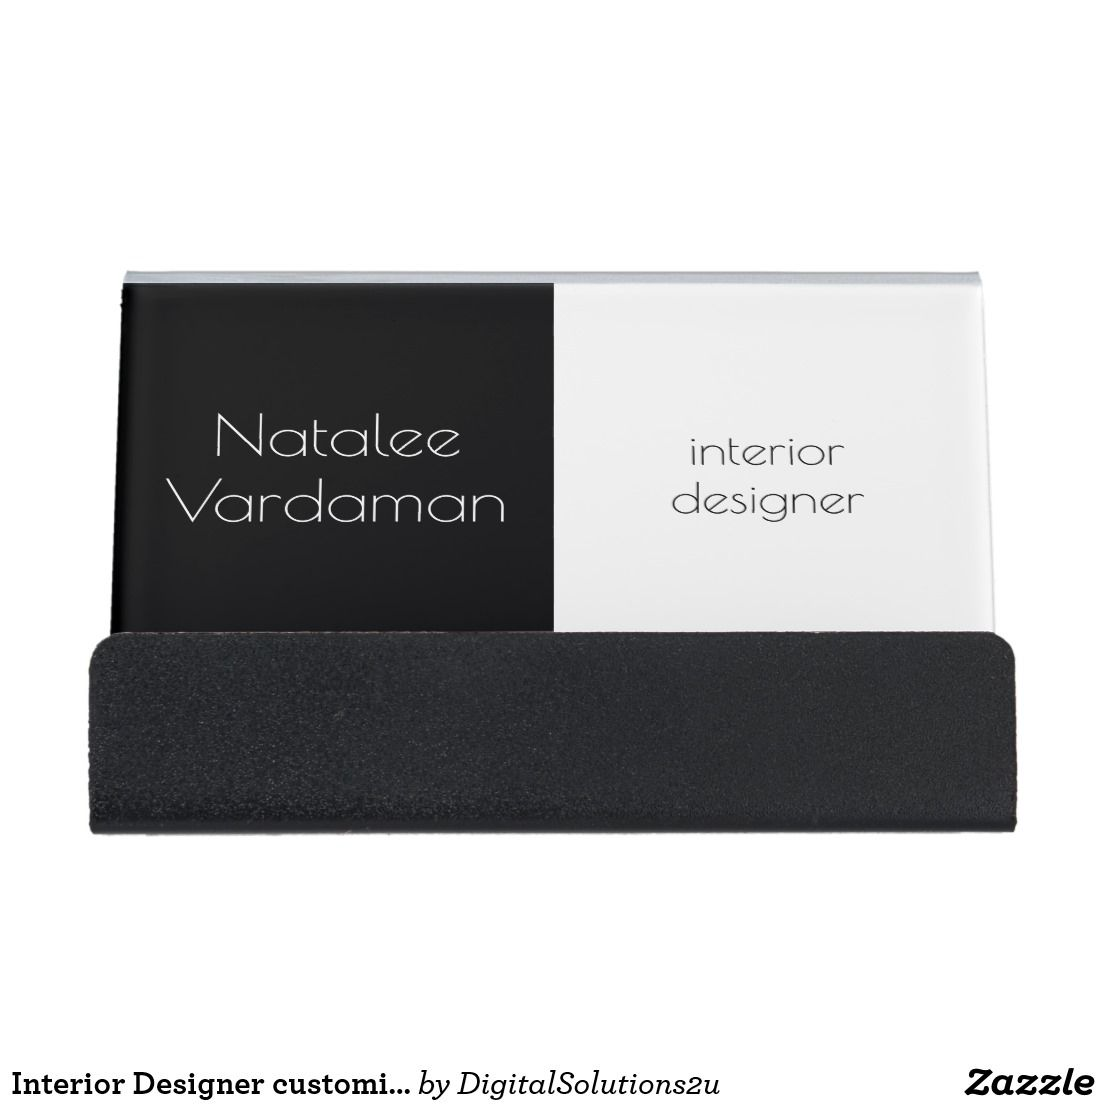 Interior designer customizable simple elegant desk business card shop interior designer customizable simple elegant desk business card holder created by personalize it with photos text or purchase as is reheart Choice Image